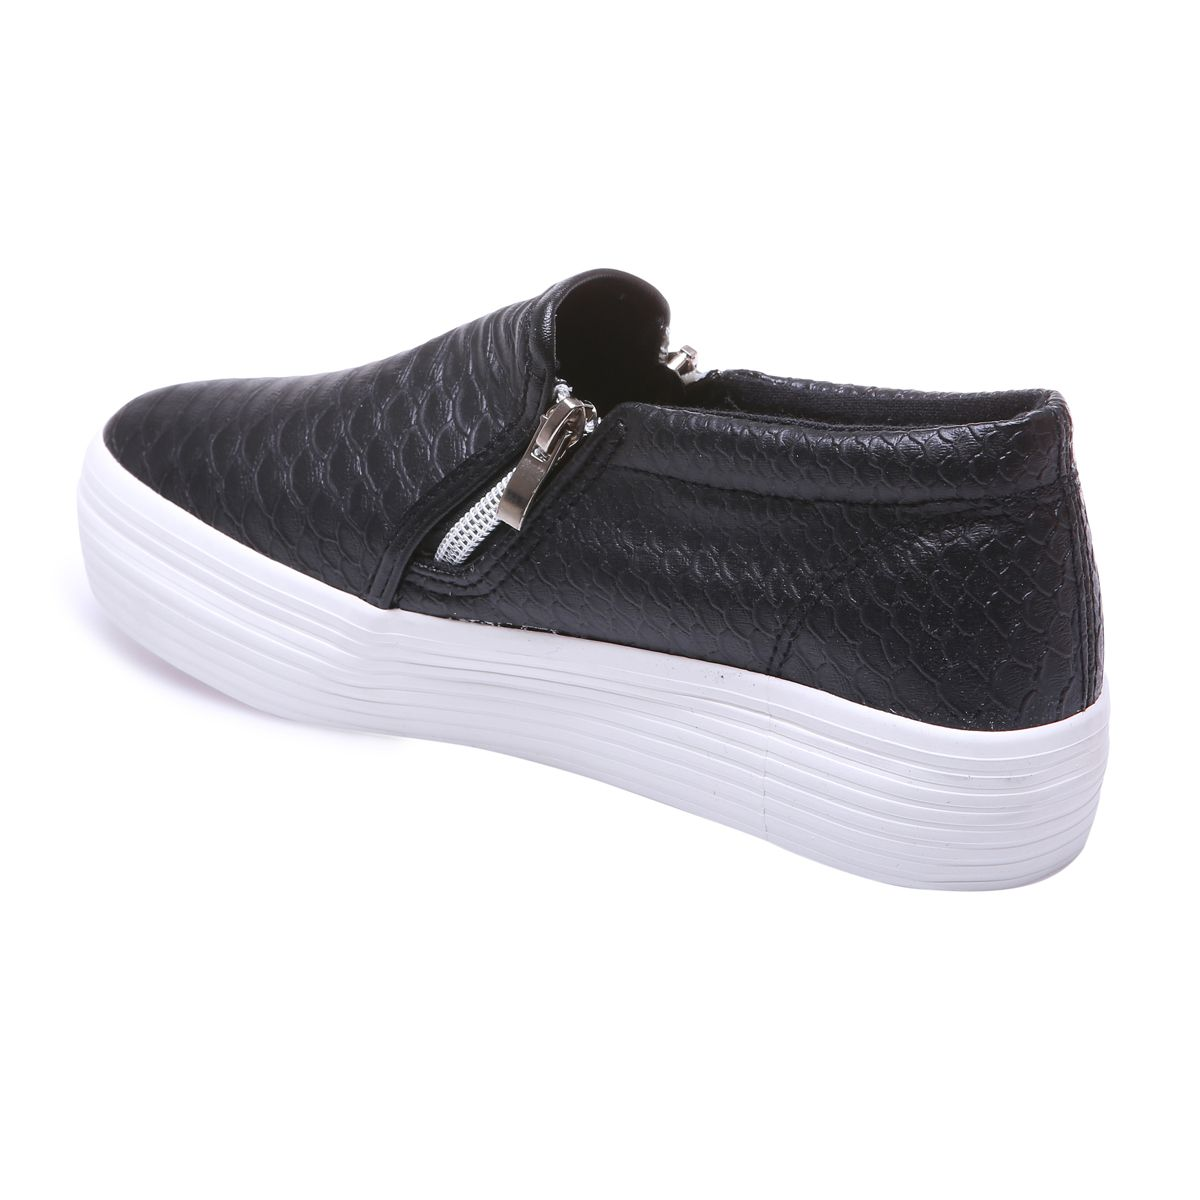 Slip-on croco noirs à plateforme